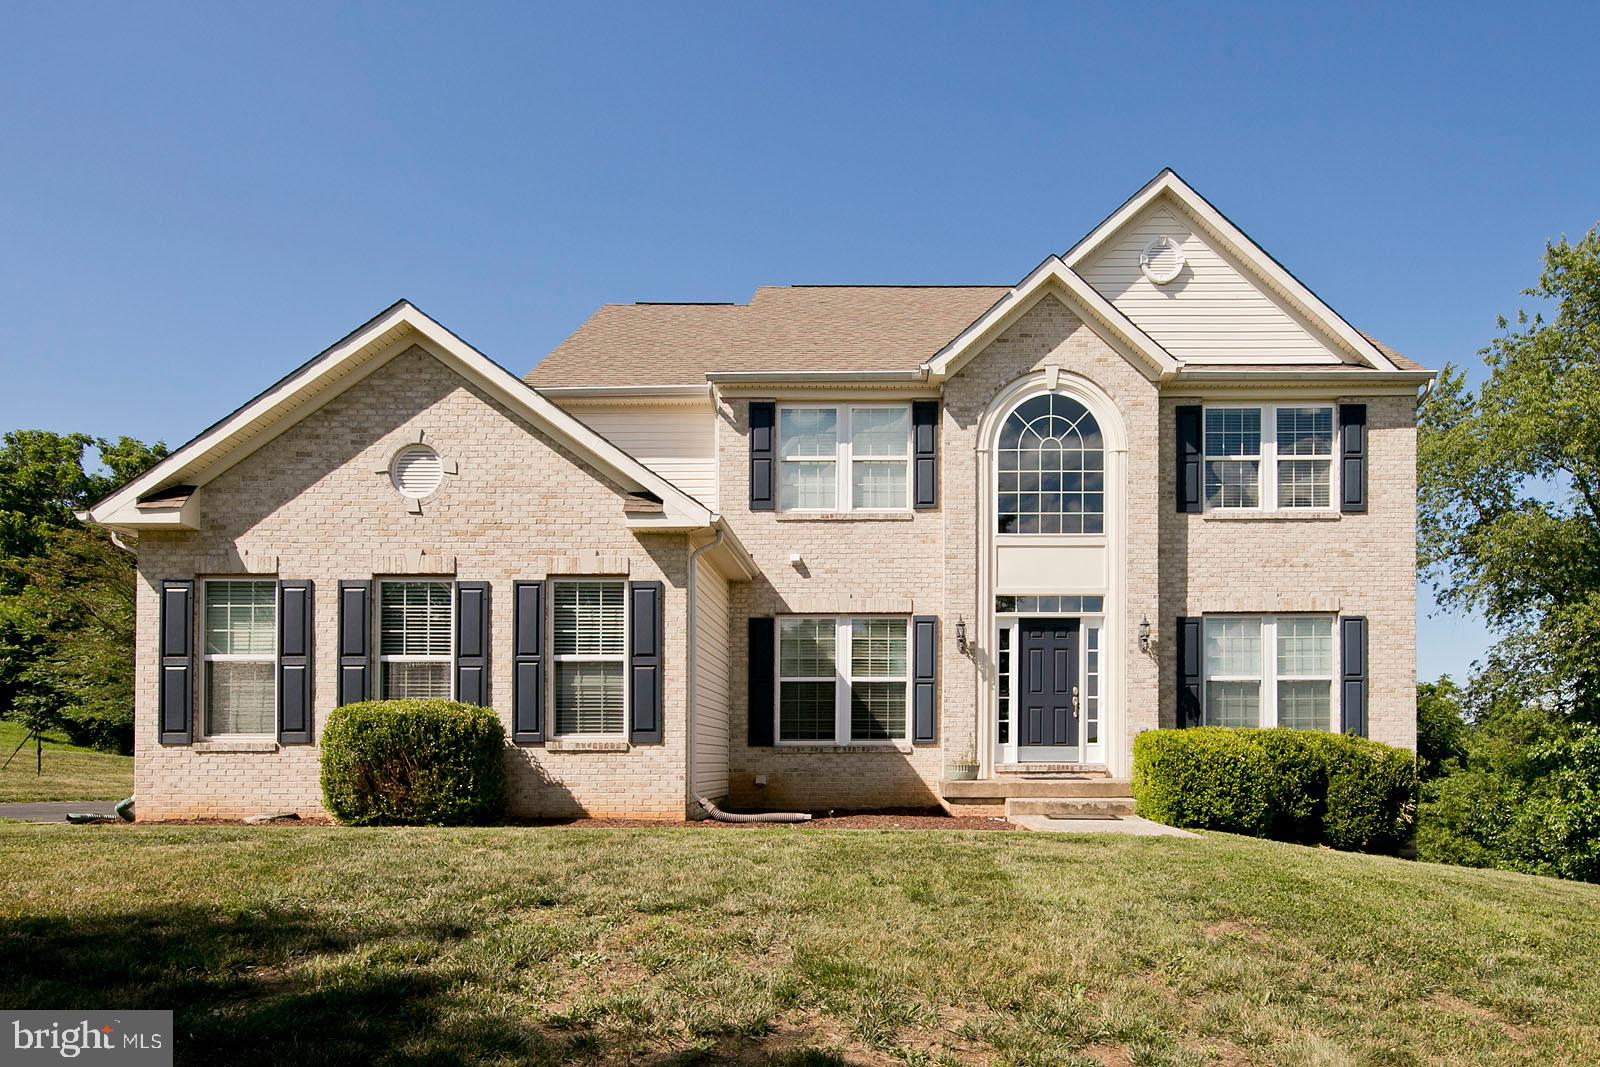 Exceptional home with wide views in elegant neighborhood. Plenty of space both inside and outside. H